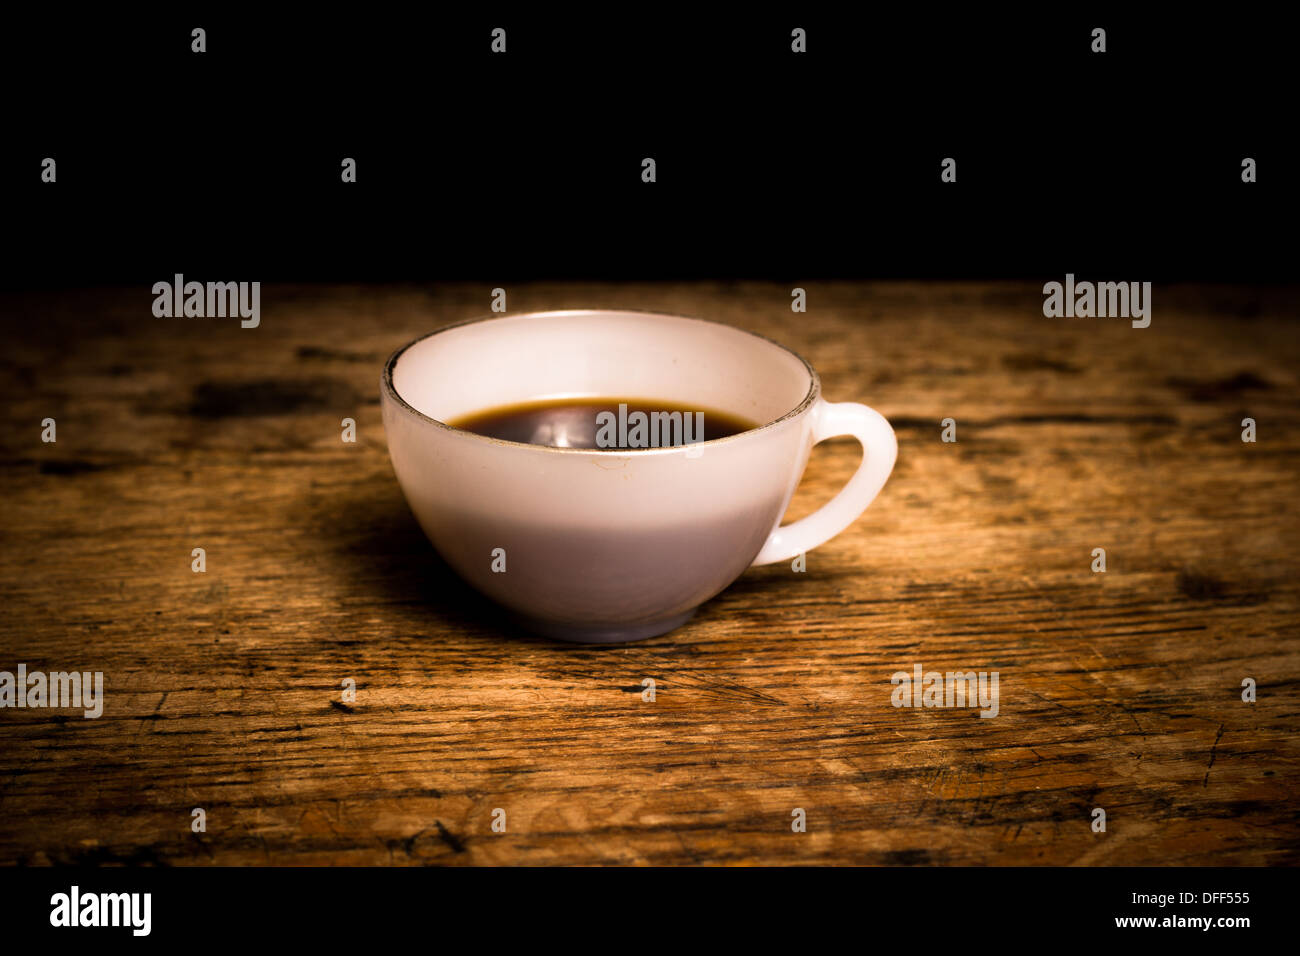 Cup of freshly brewed black coffee on a wood surface - Stock Image